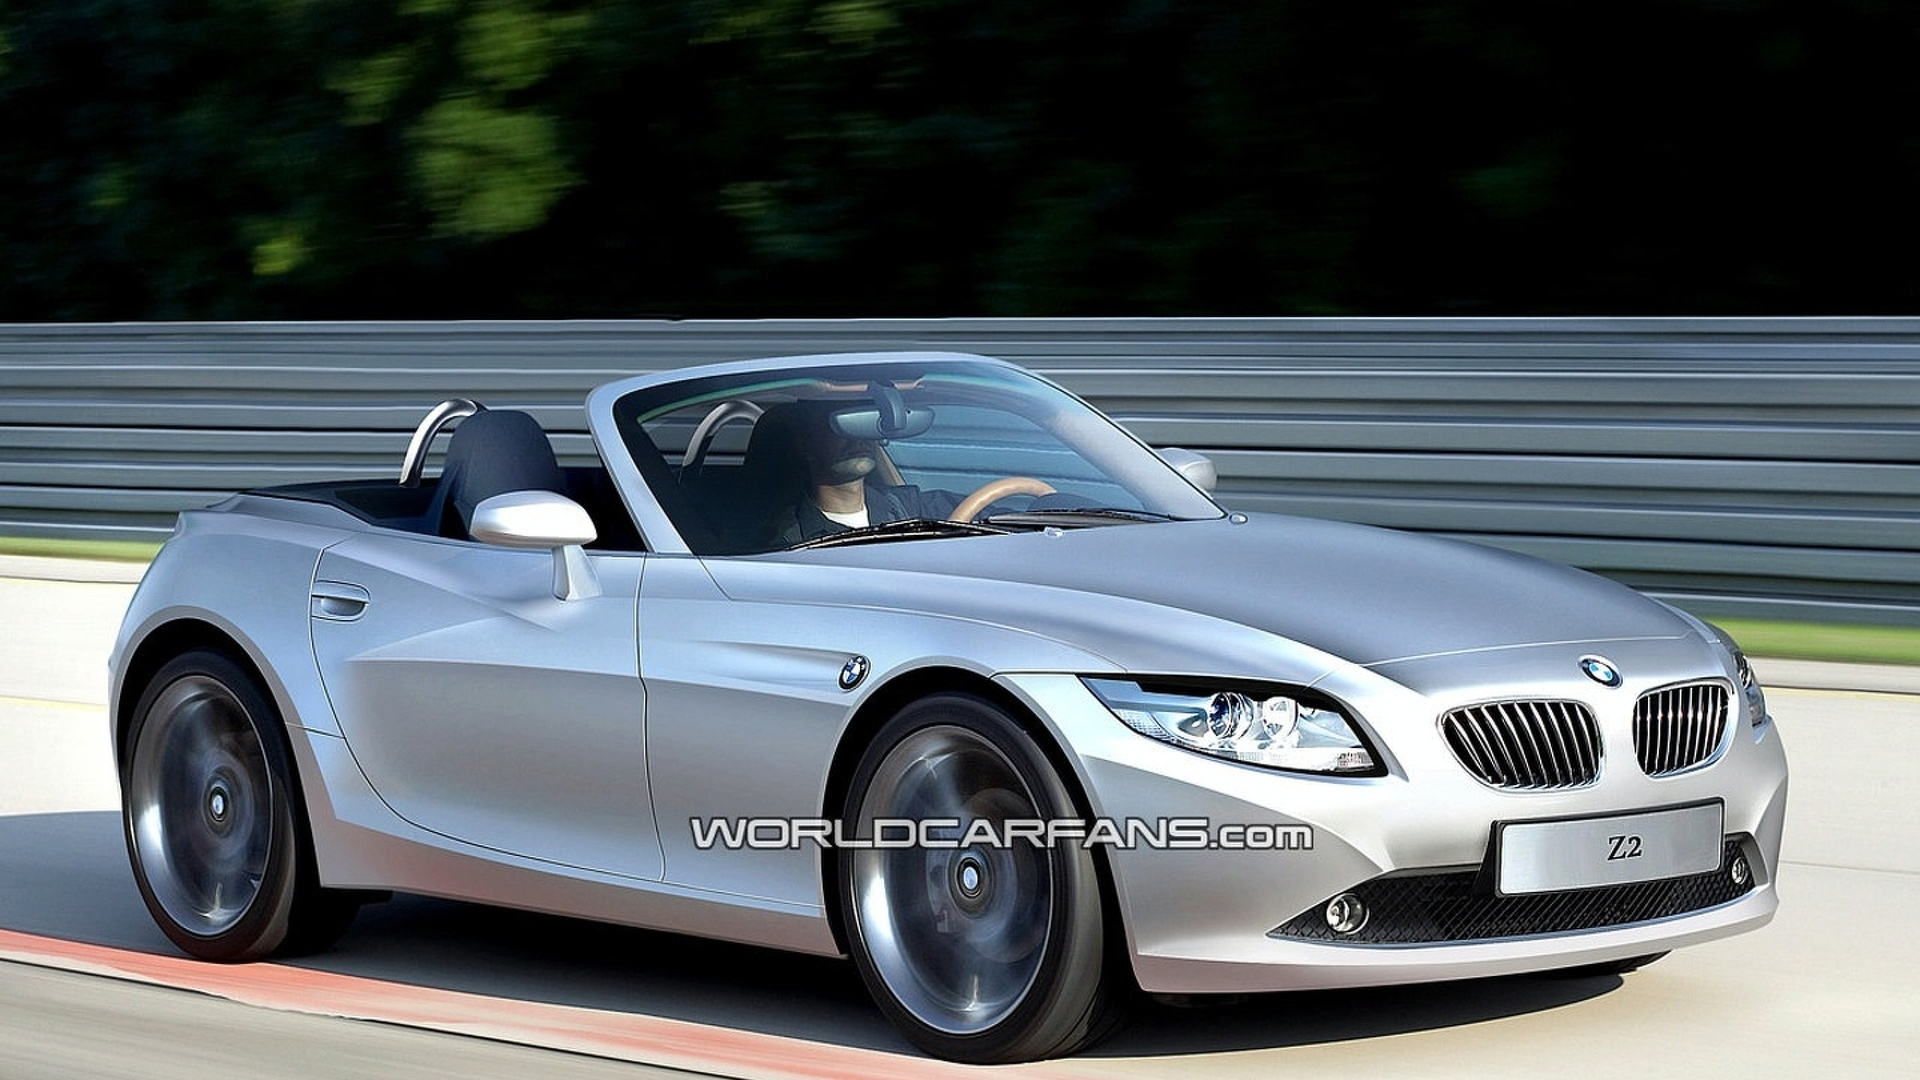 BMW Z2 roadster could debut in 2014 - report